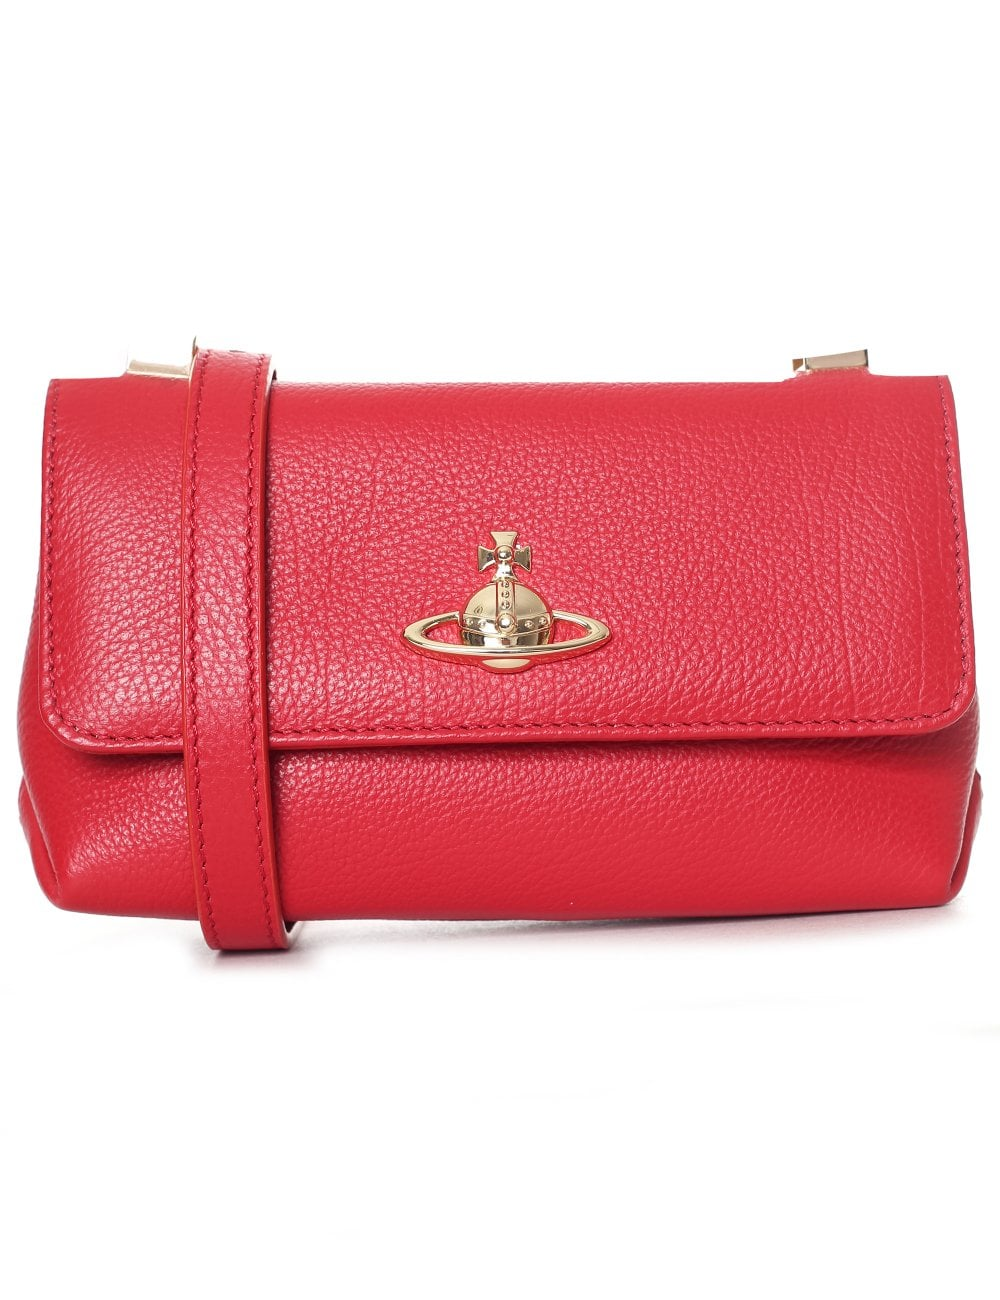 65ce585a20a Vivienne Westwood Women's Balmoral Small Bag With Flap Red